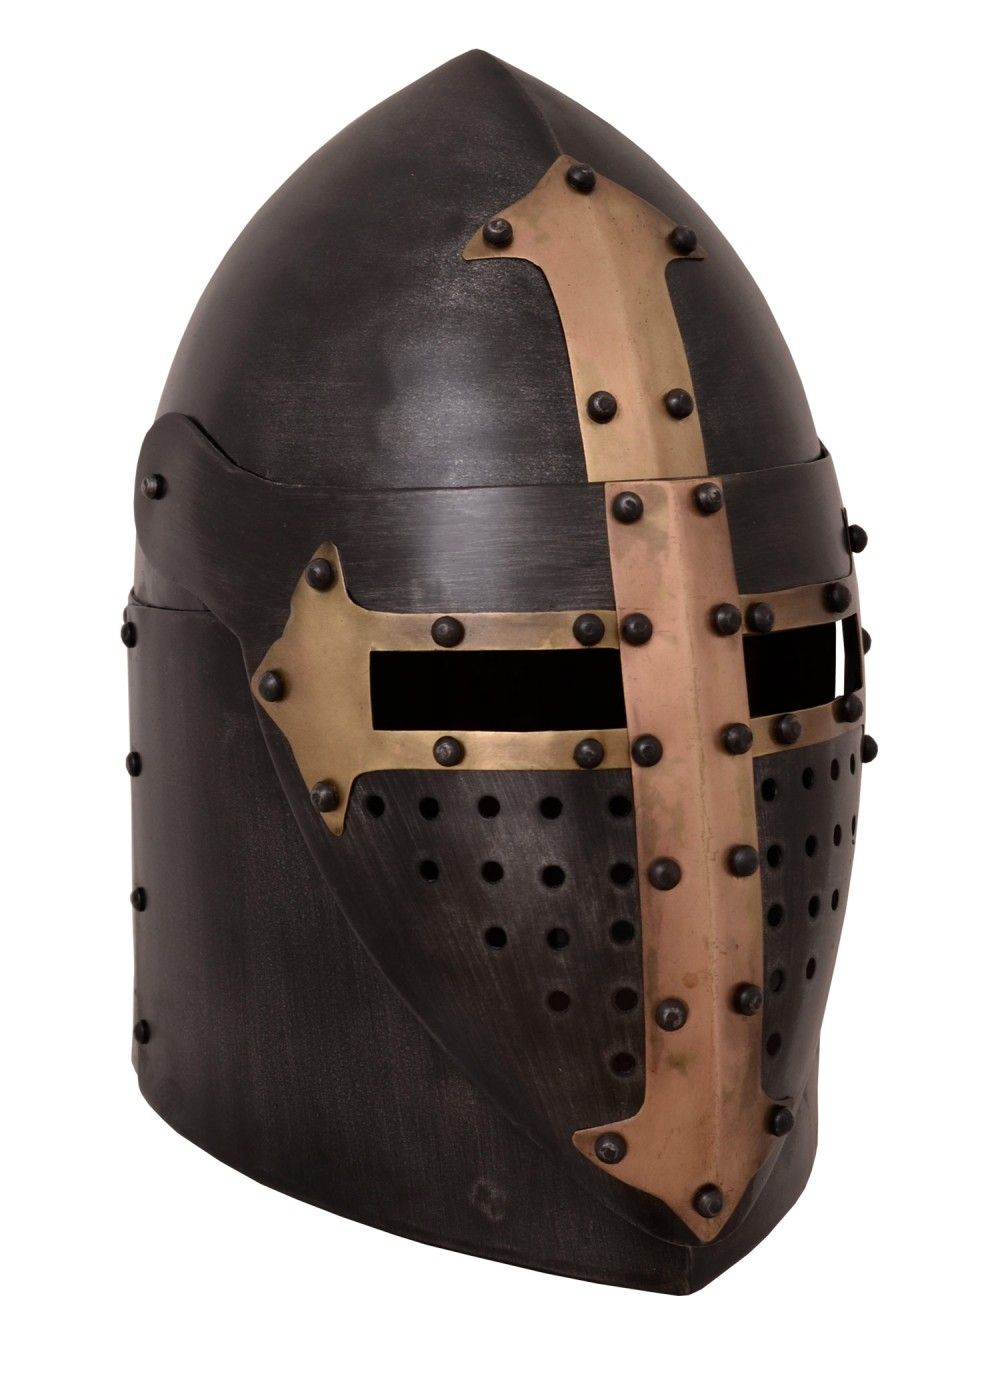 Sugarloaf Helm With Hinged Visor Thevikingstore Co Uk